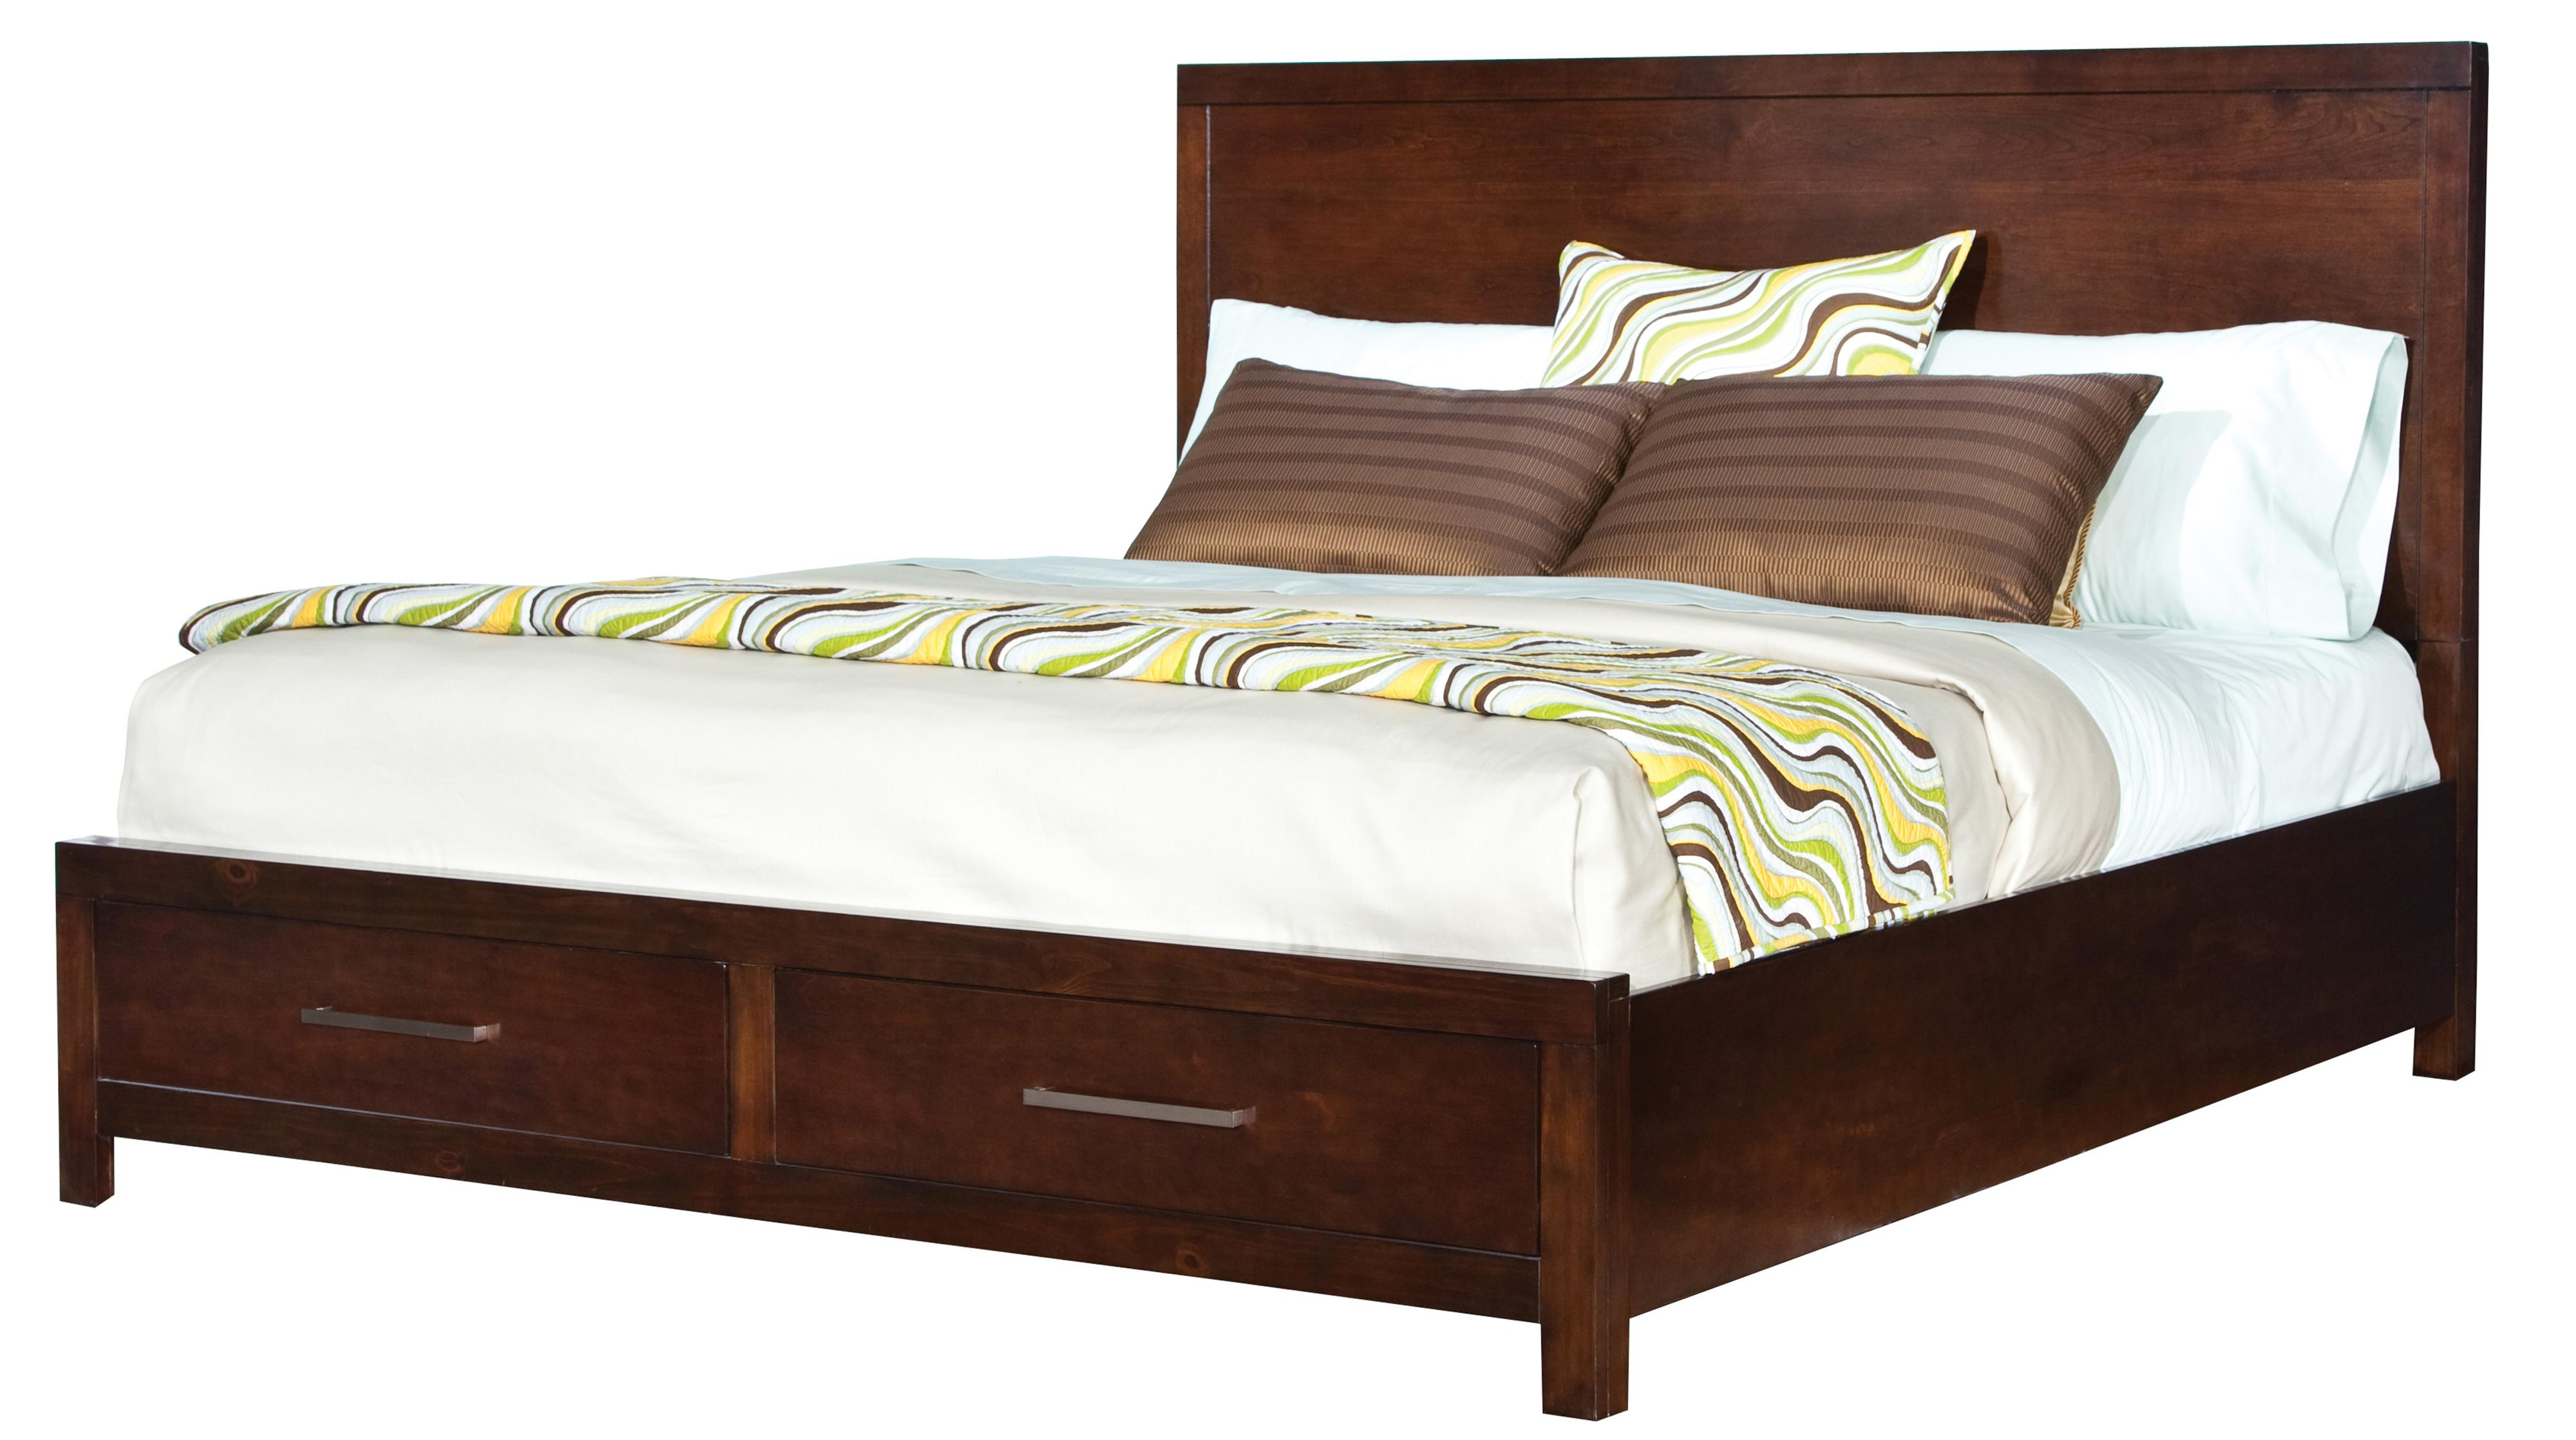 Standard Furniture Metro Queen Platform Bed - Item Number: 87951+52+53